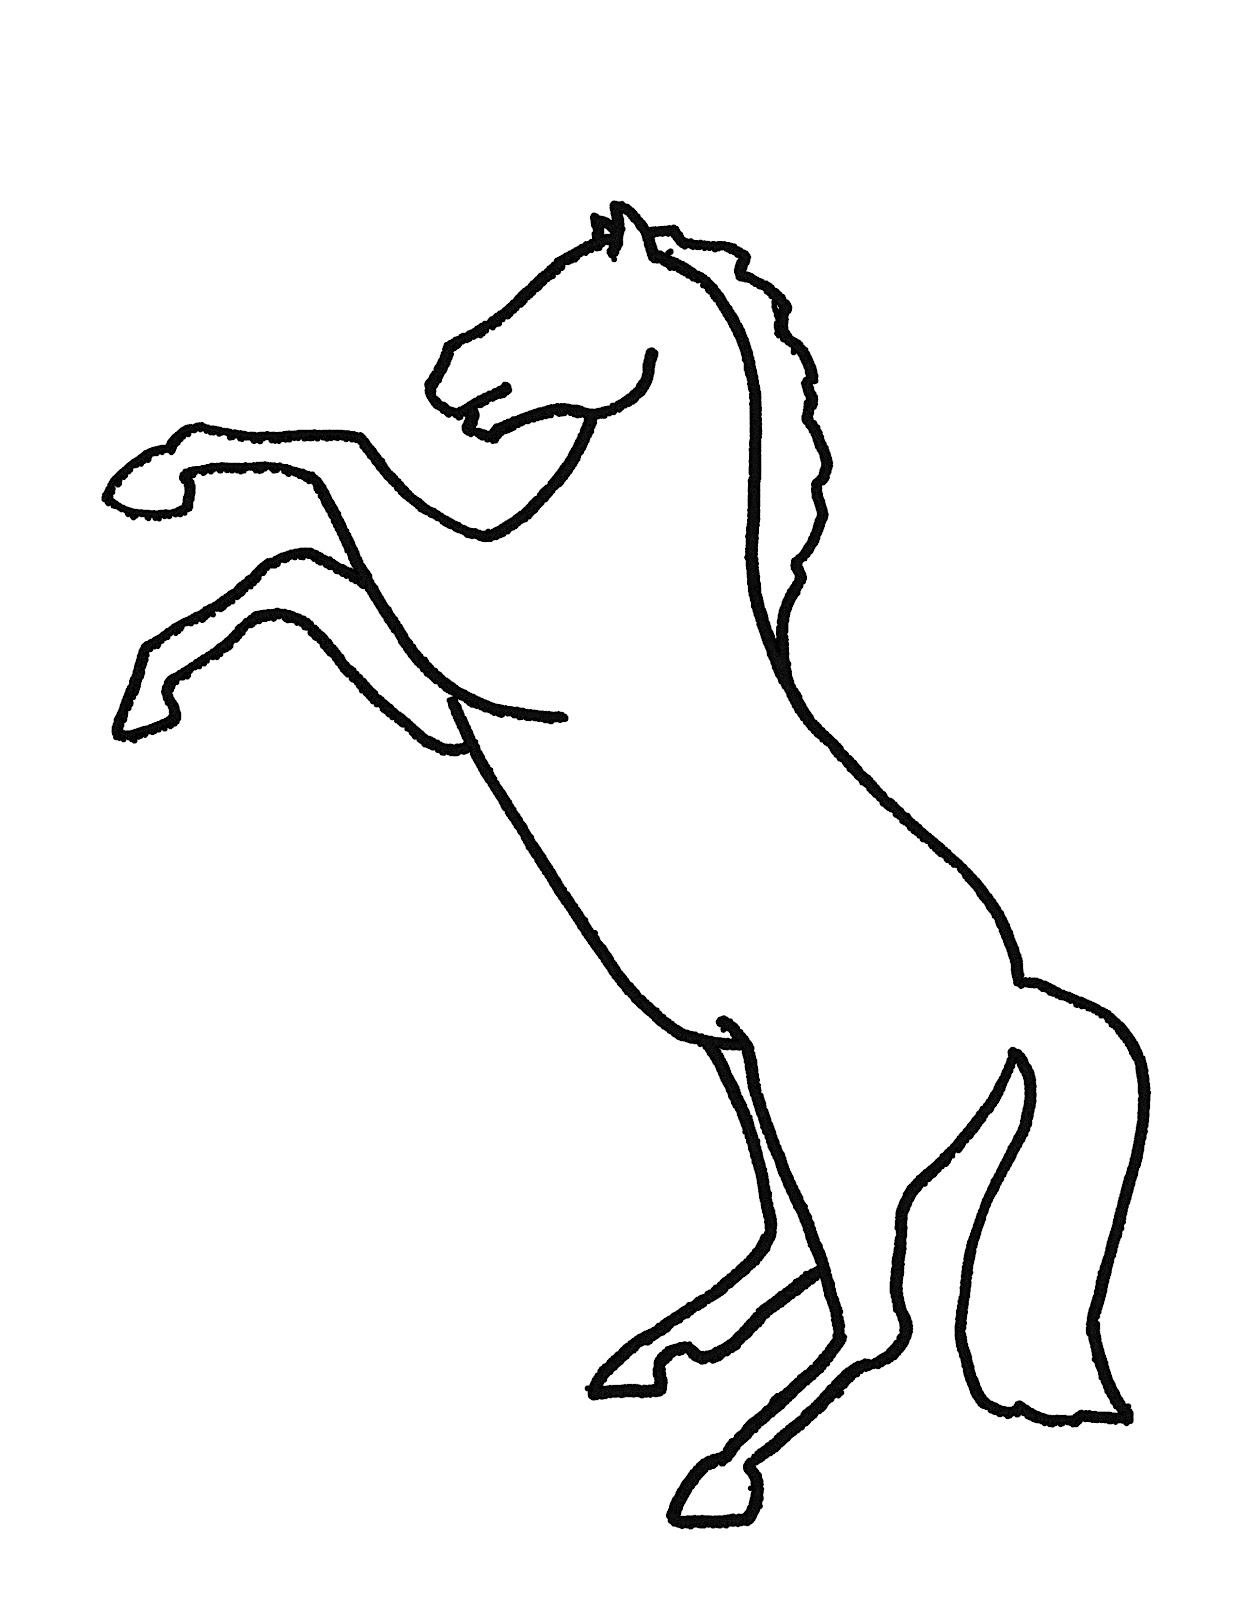 rearing horse outline